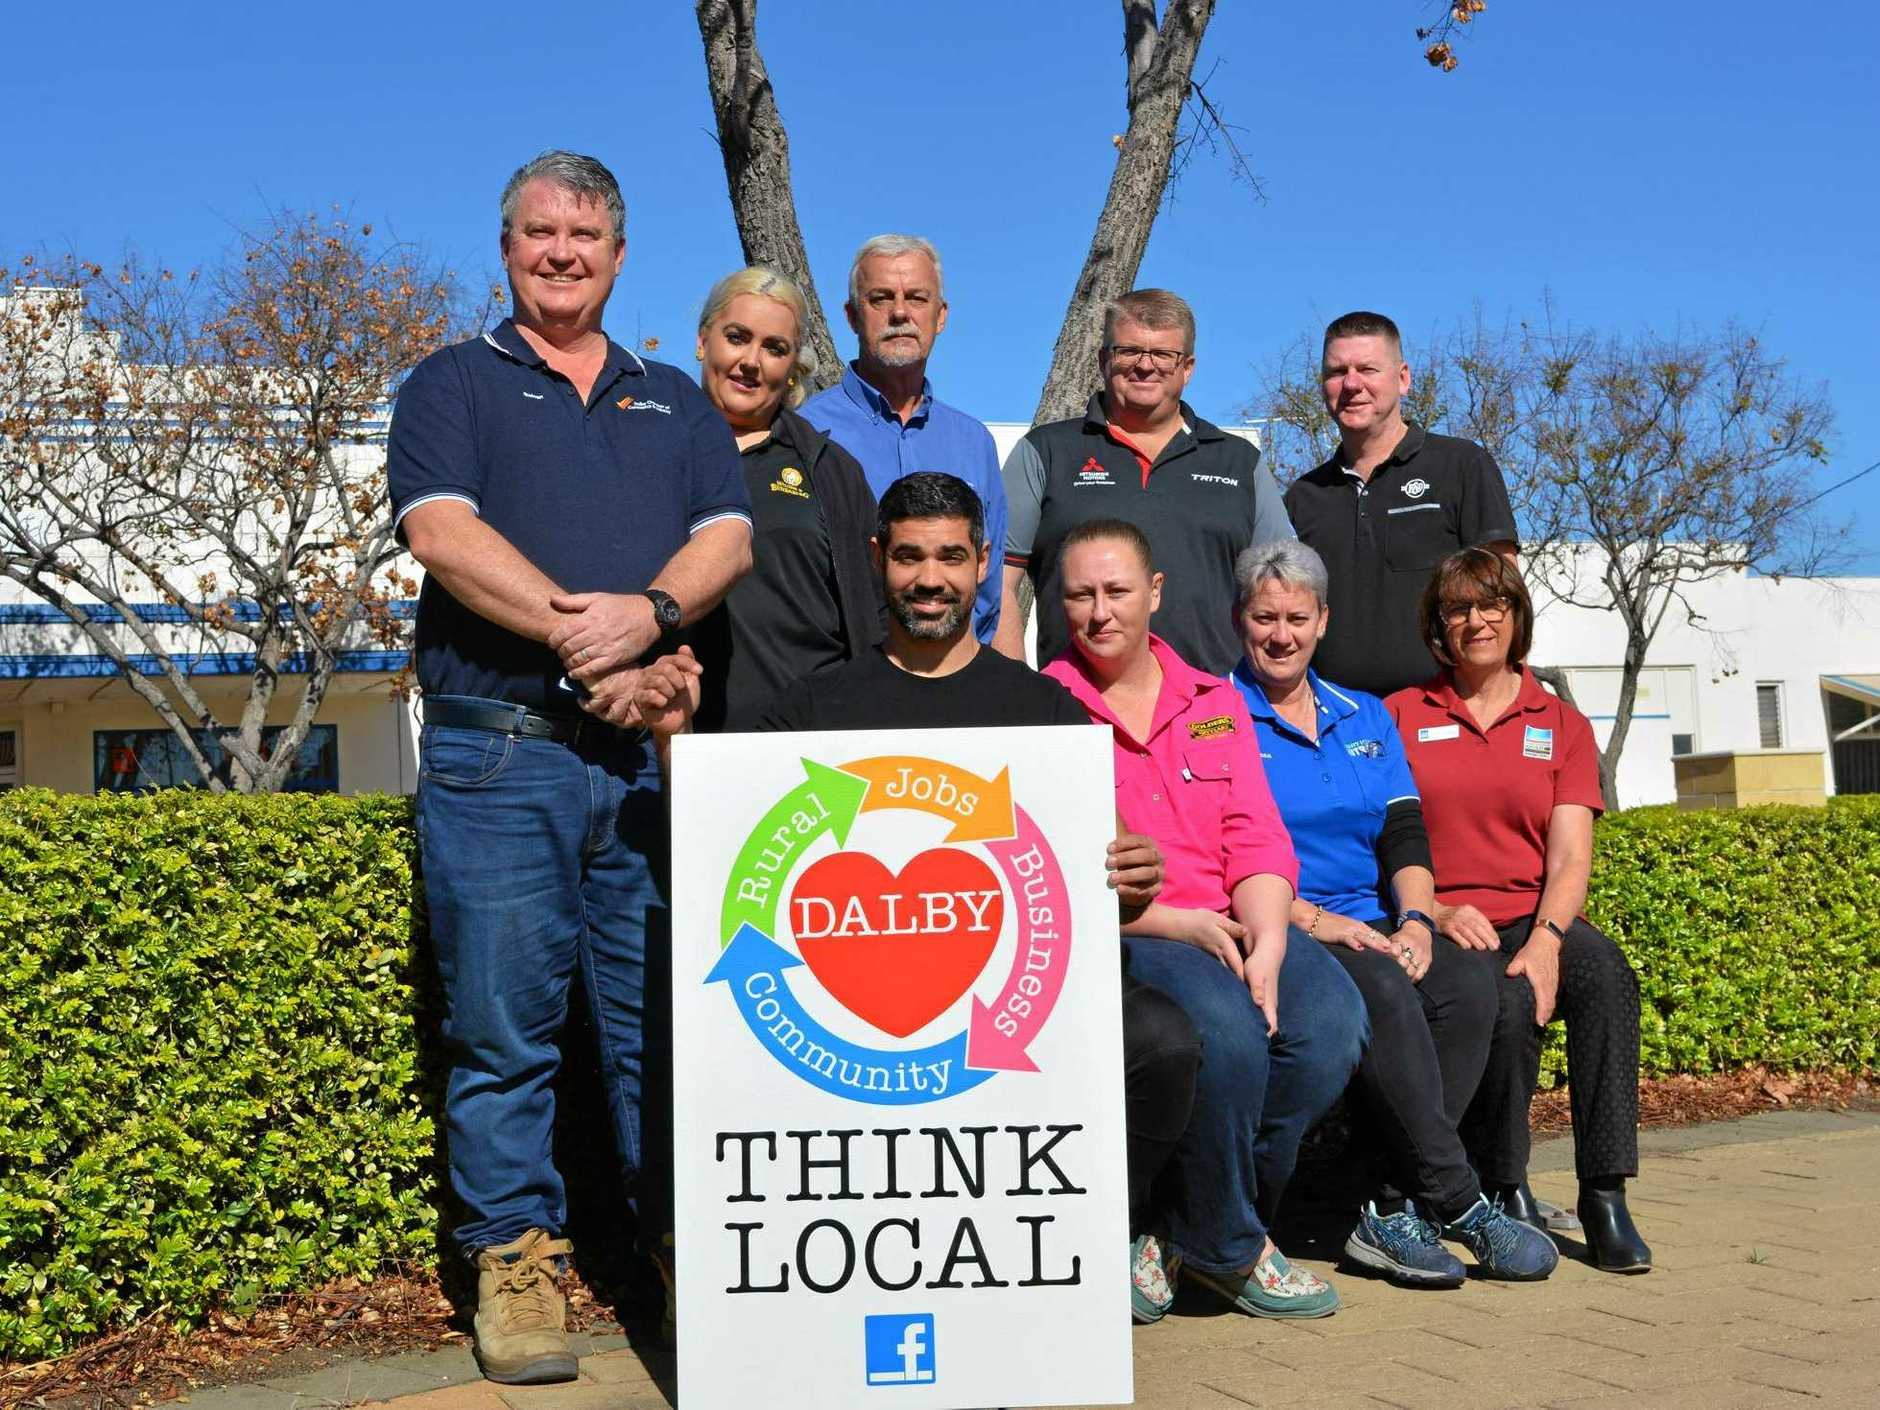 LOCAL FOCUS: The Think Local, Love Dalby campaign kicked off this week, rewarding shoppers for choosing to support local.